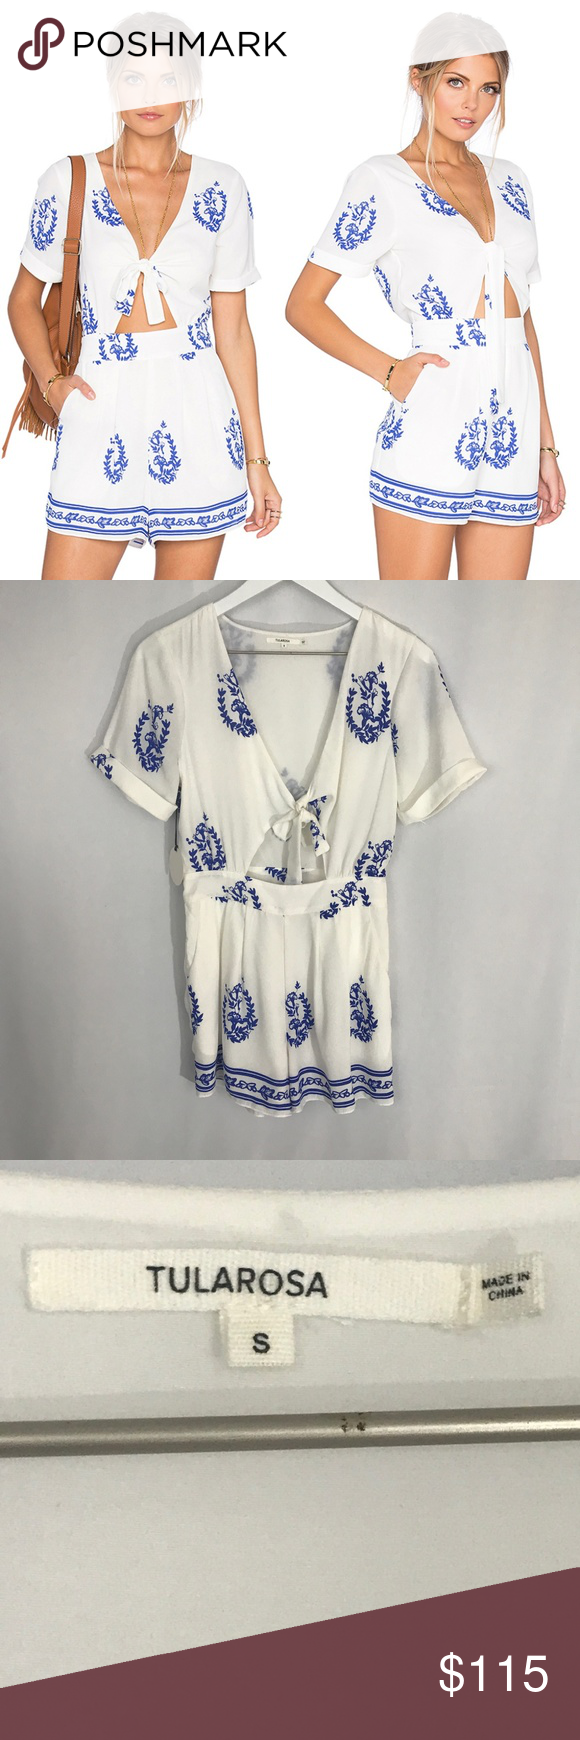 239ae8879851 NWT Tularosa X Revolve Rowley Romper Blue White Brand new with tags!! Color  Blue